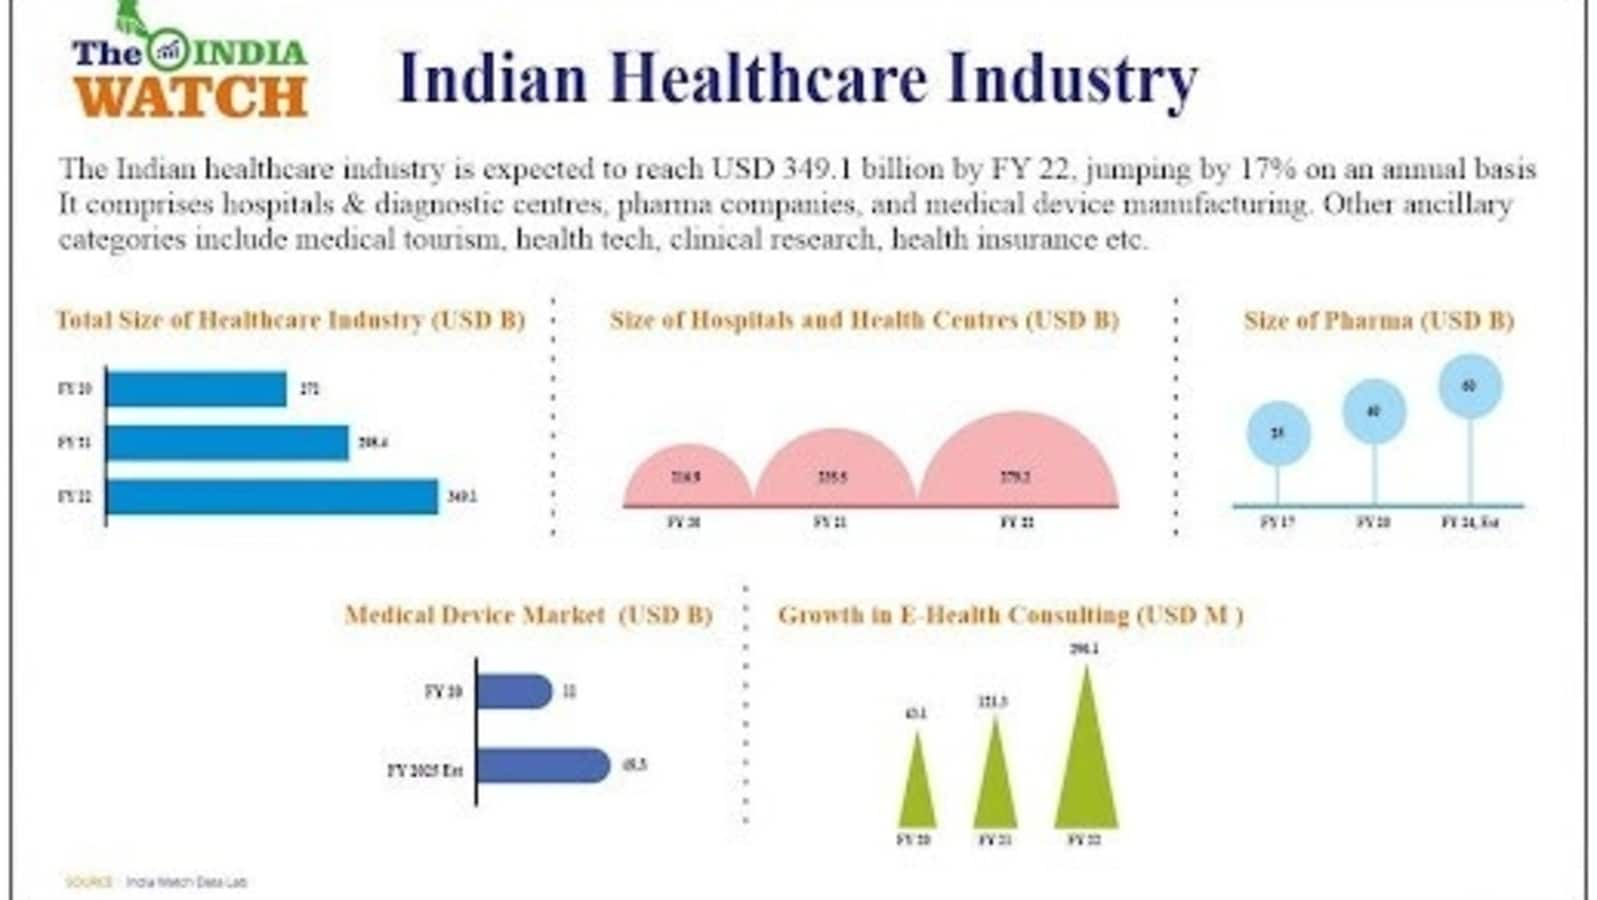 hindustantimes.com - HT Brand Studio - The Indian healthcare industry will continue to draw investor attention